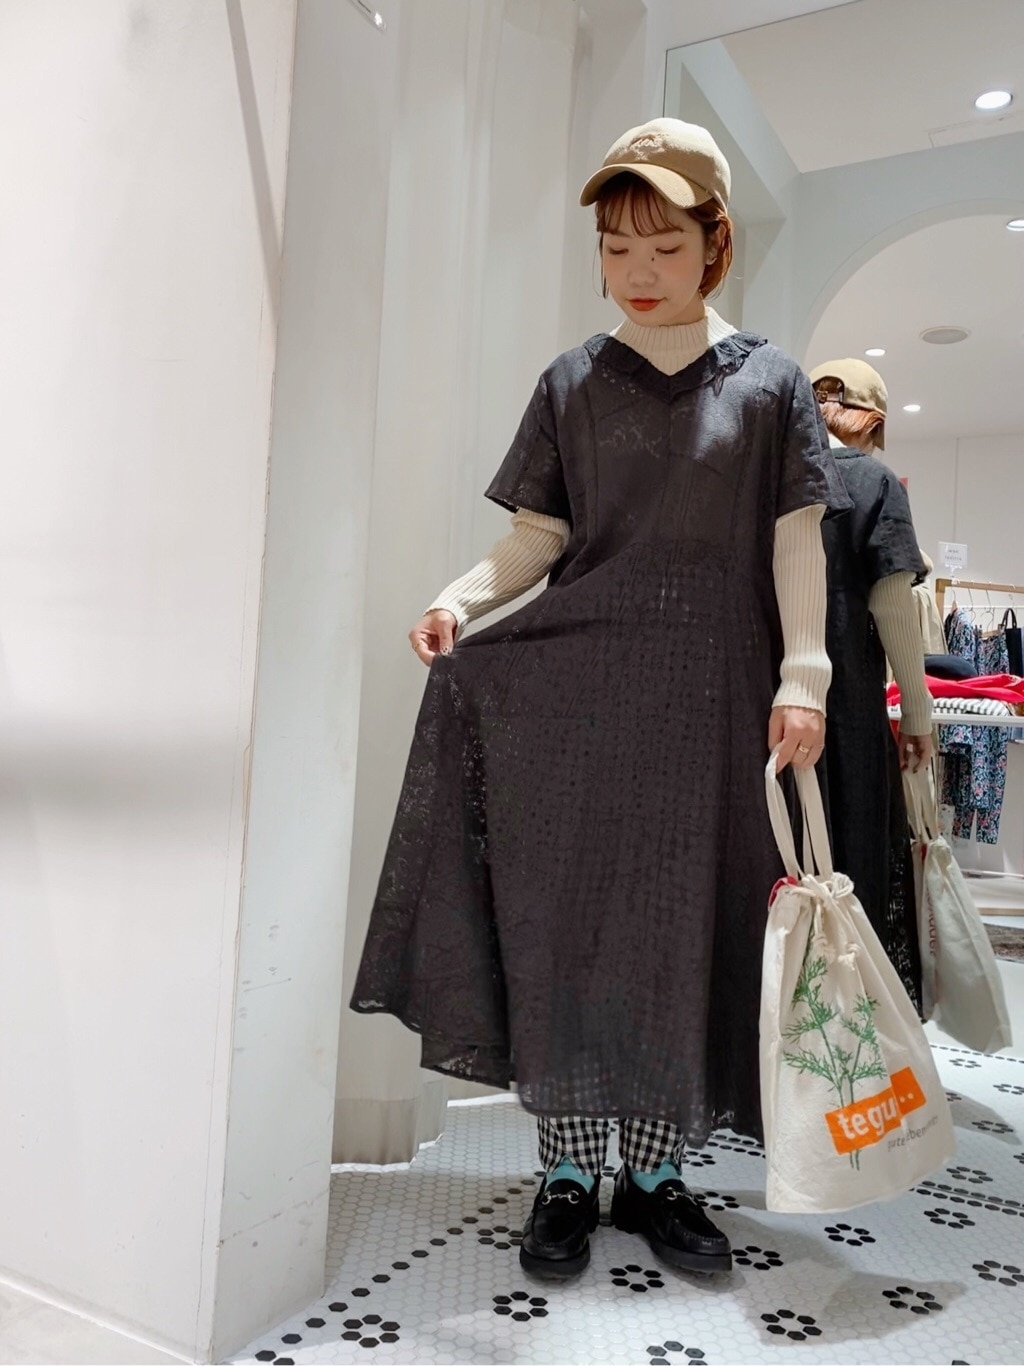 Dot and Stripes CHILD WOMAN 新宿ミロード 身長:153cm 2020.03.25